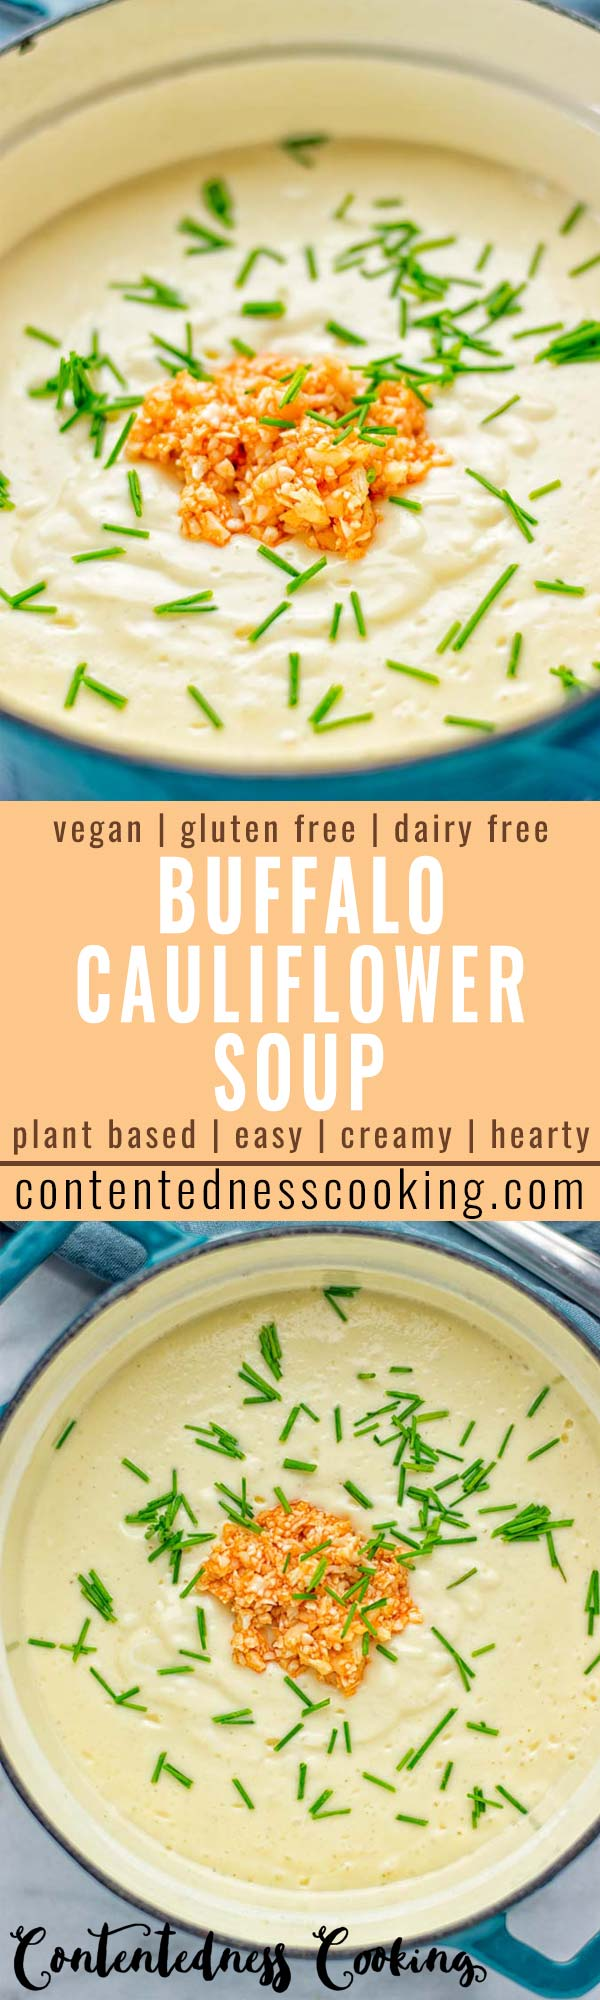 This Buffalo Cauliflower Soup is the ultimate comfort food for everyone and so satisfying. Vegan, gluten free, made without any cream or butter, an amazing and delicious option for dinner, lunch, meal prep, worklunch and so much more. This is a keeper try it now! #vegan #glutenfree #dairyfree #vegetarian #cauliflower #dinner #lunch #soup #mealprep #worklunchideas #easyfood #buffalocauliflower #contentednesscooking